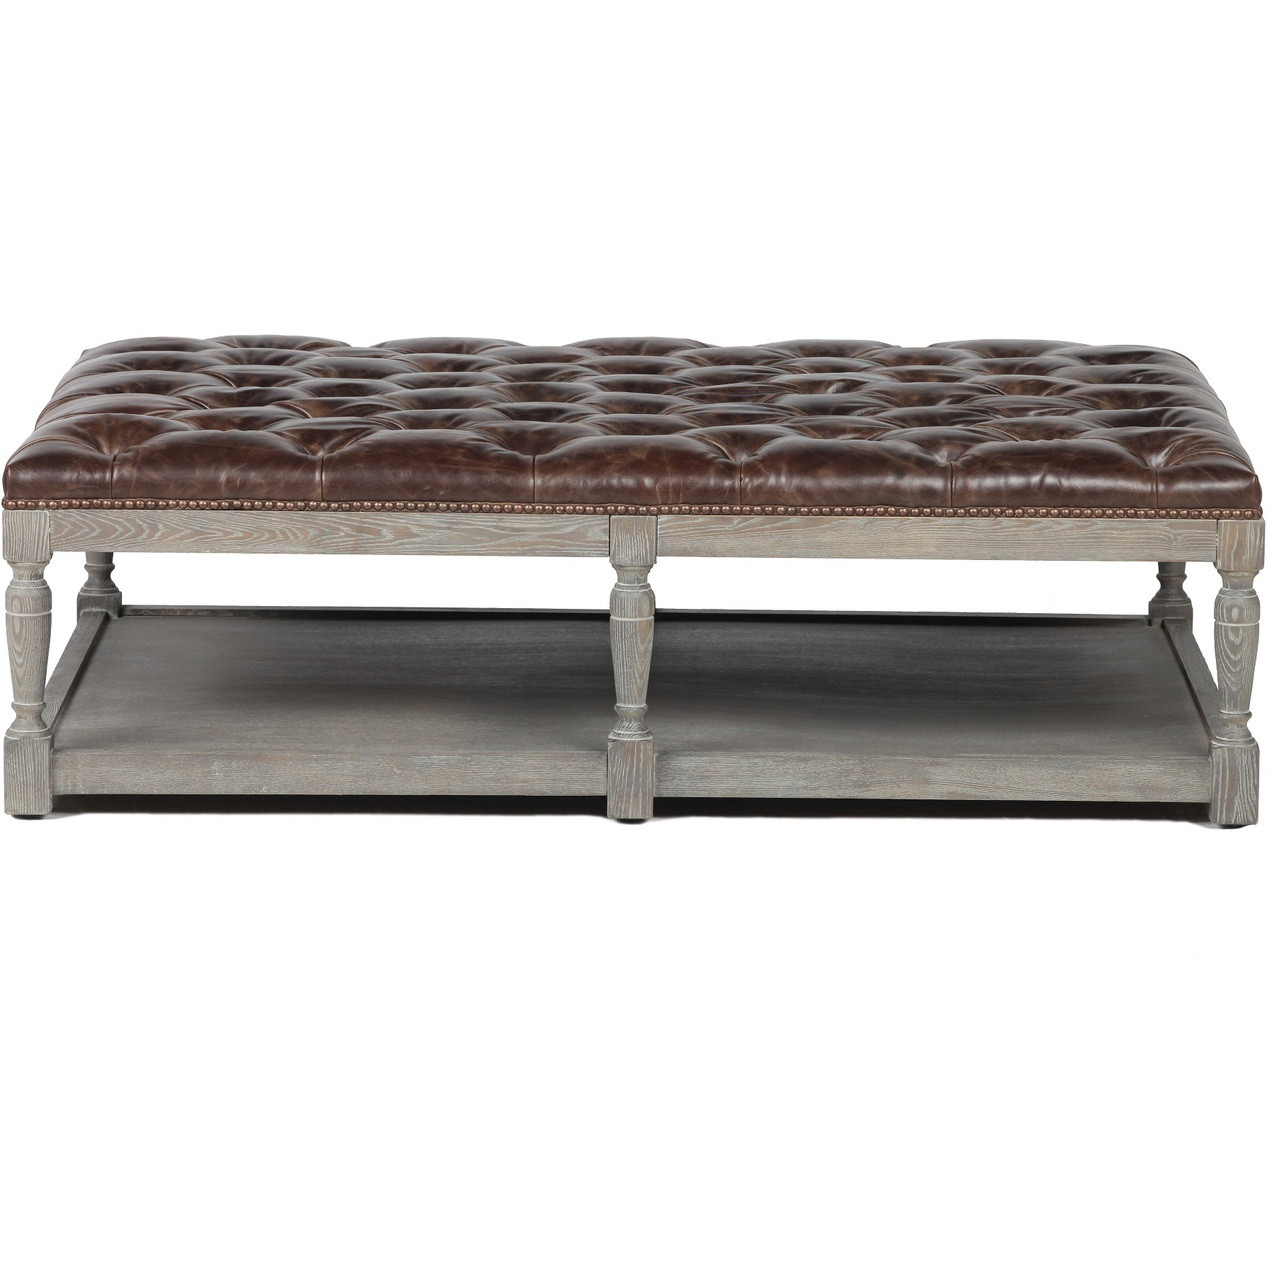 Beautiful Thomas Chesterfield Tufted Leather Coffee Ottoman